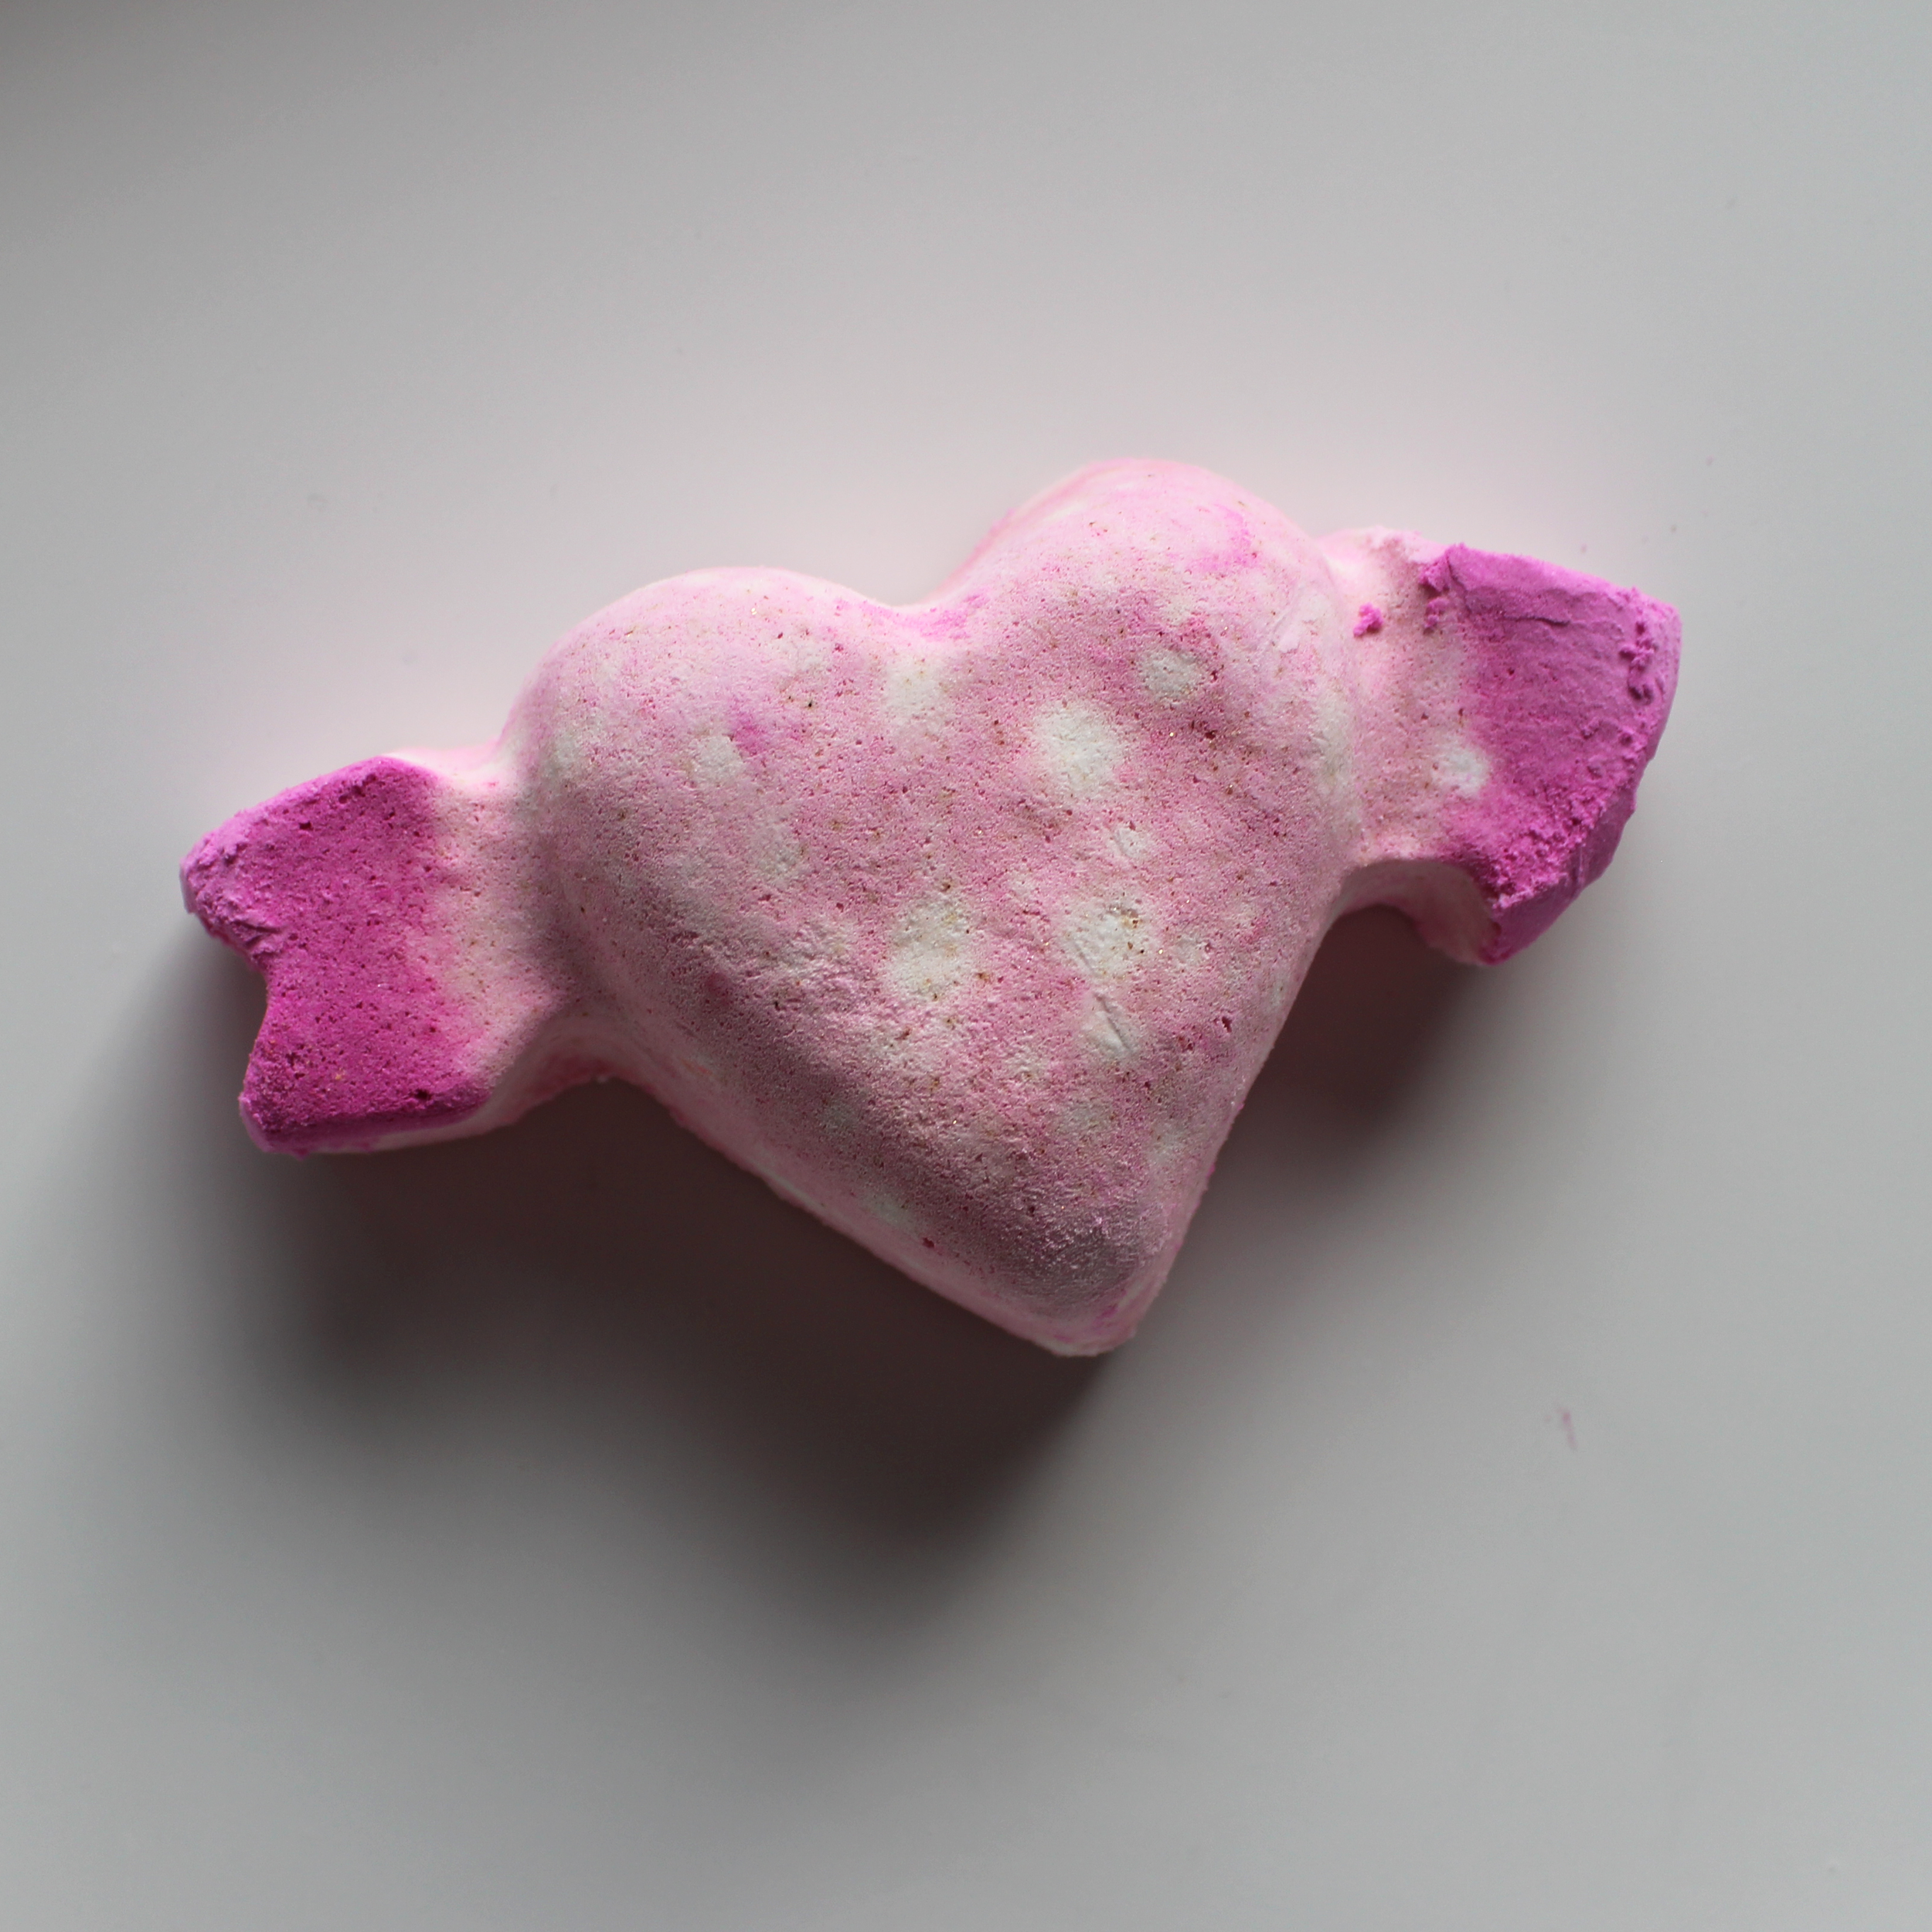 LUSH Cupid Bath Bomb review | Emma Louisa